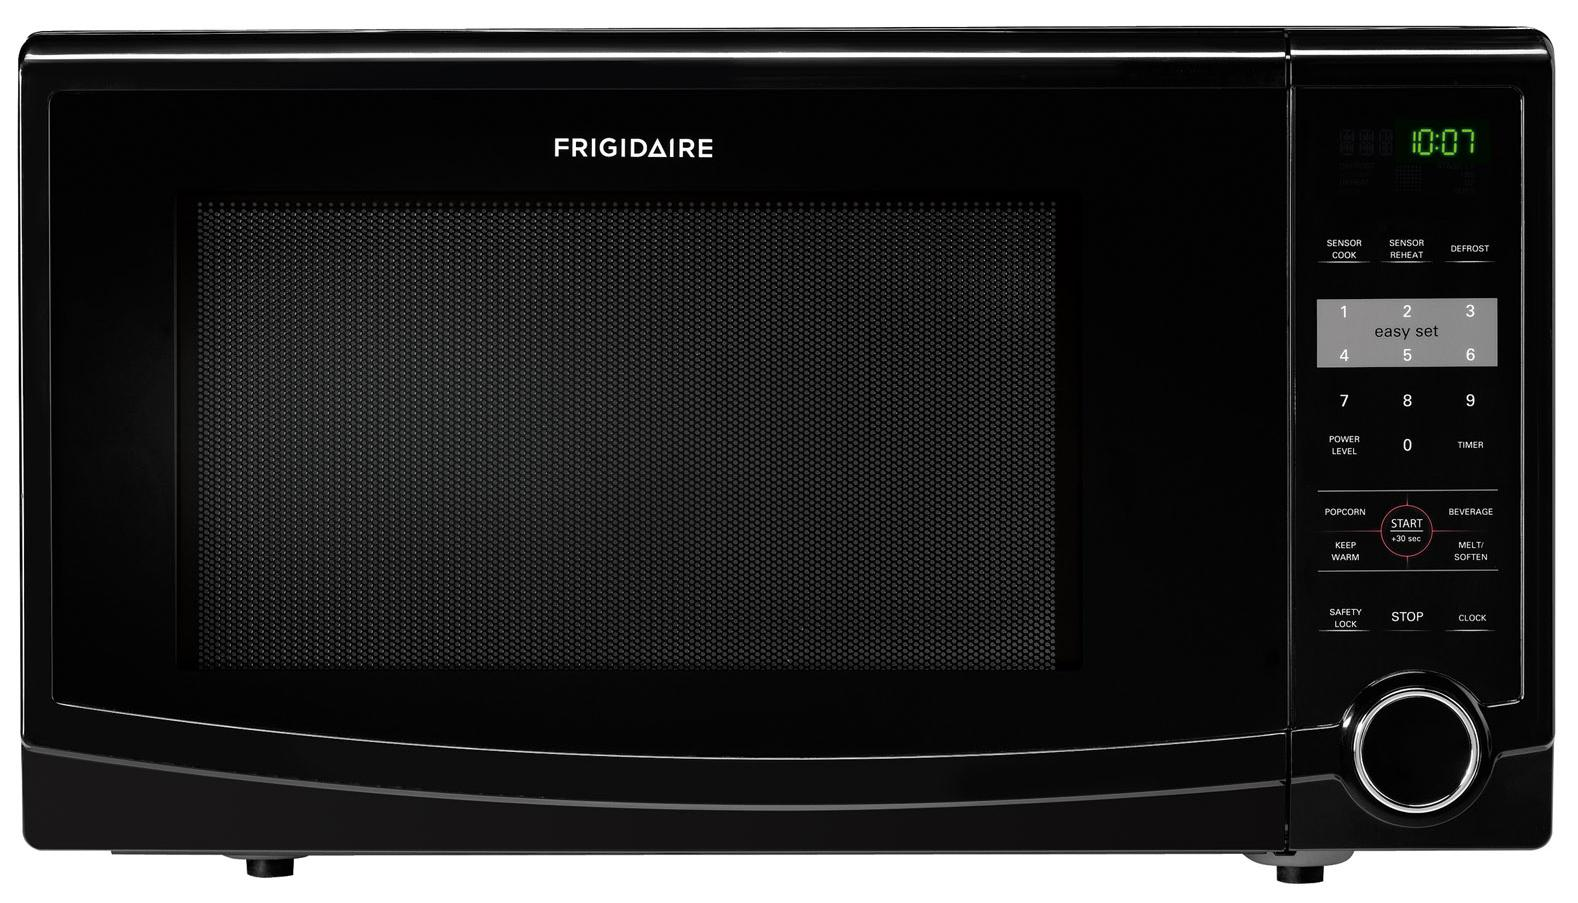 Frigidaire Microwaves 1.1 Cu. Ft. Countertop Microwave - Item Number: FFCM1134LB